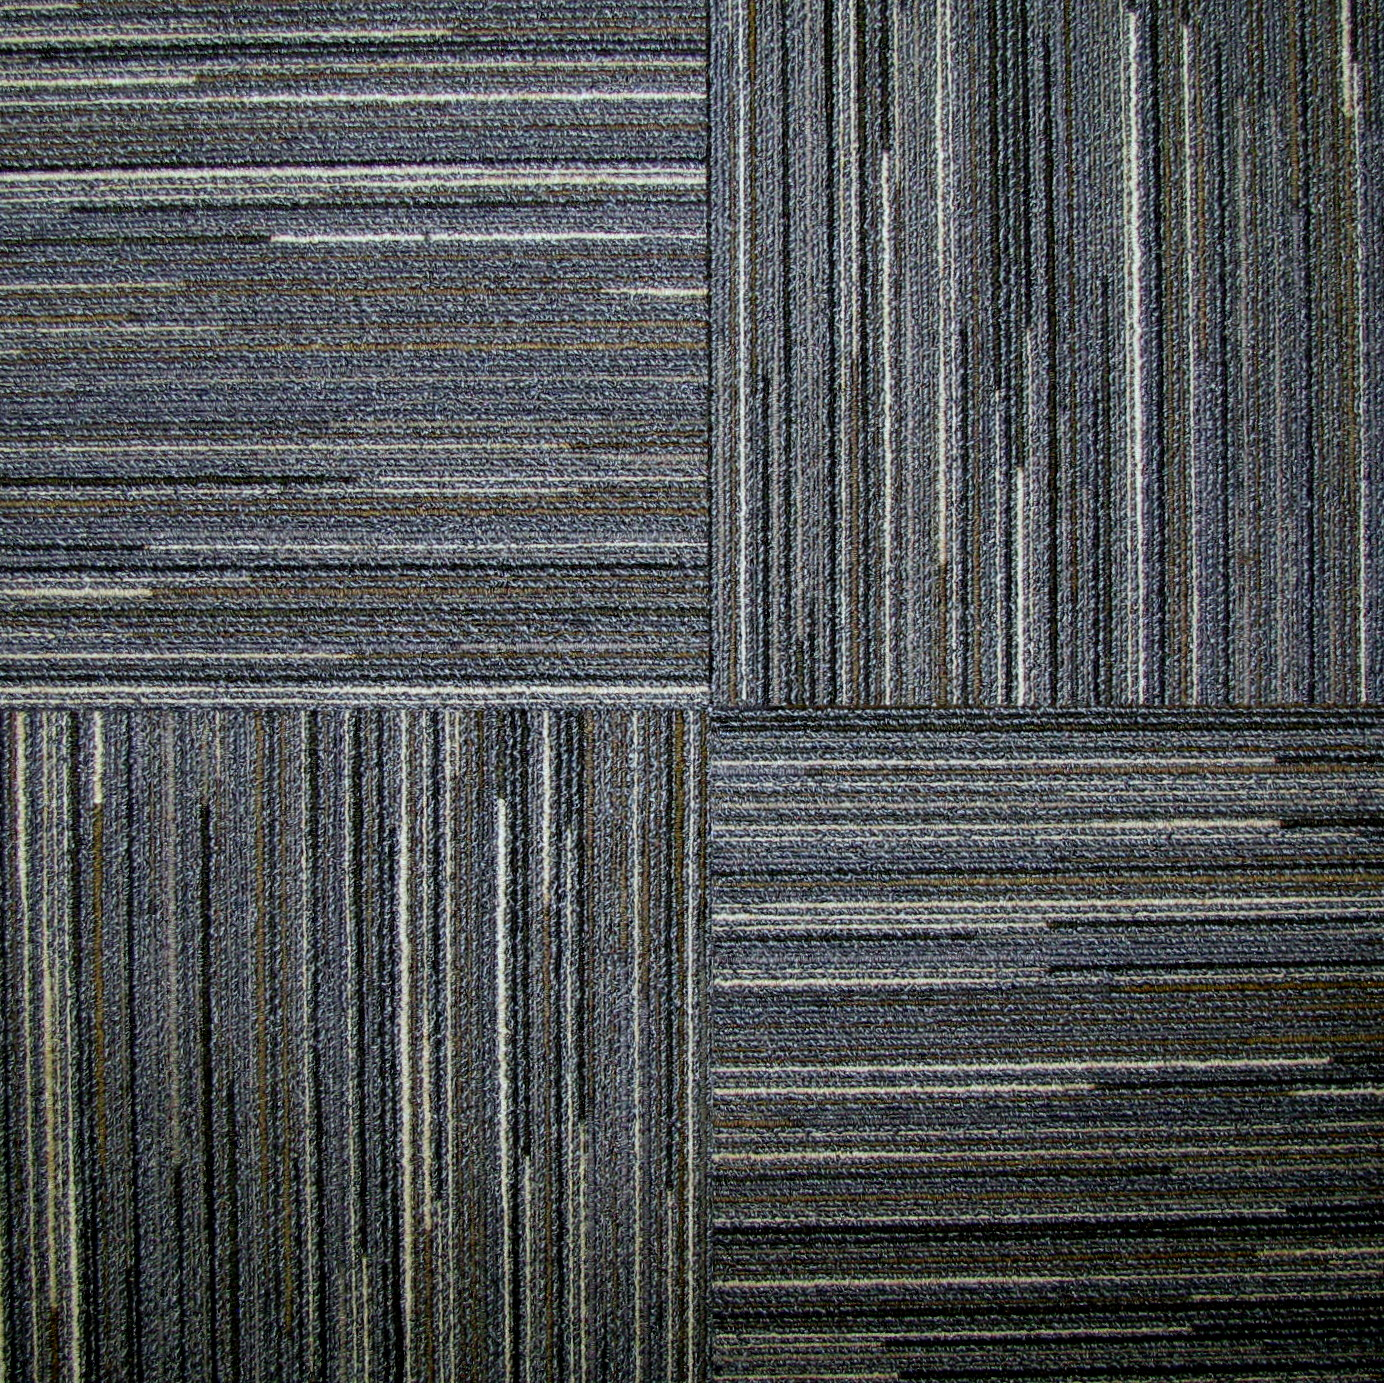 59 tile and carpet, fall in line carpet tile contemporary carpet tiles by GBNWRVC